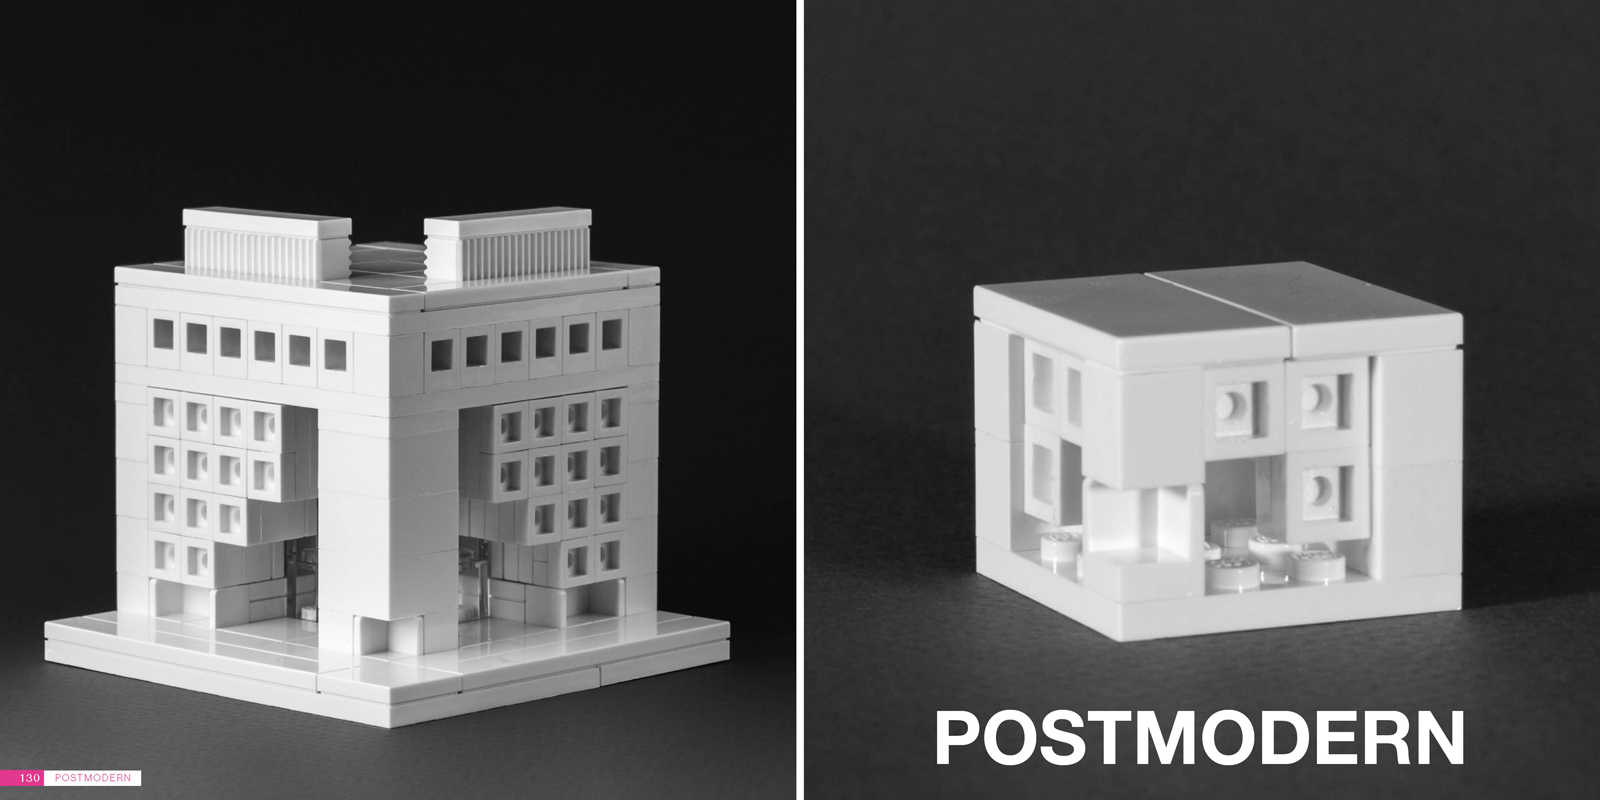 nanoscale models of the lego architect brick architect